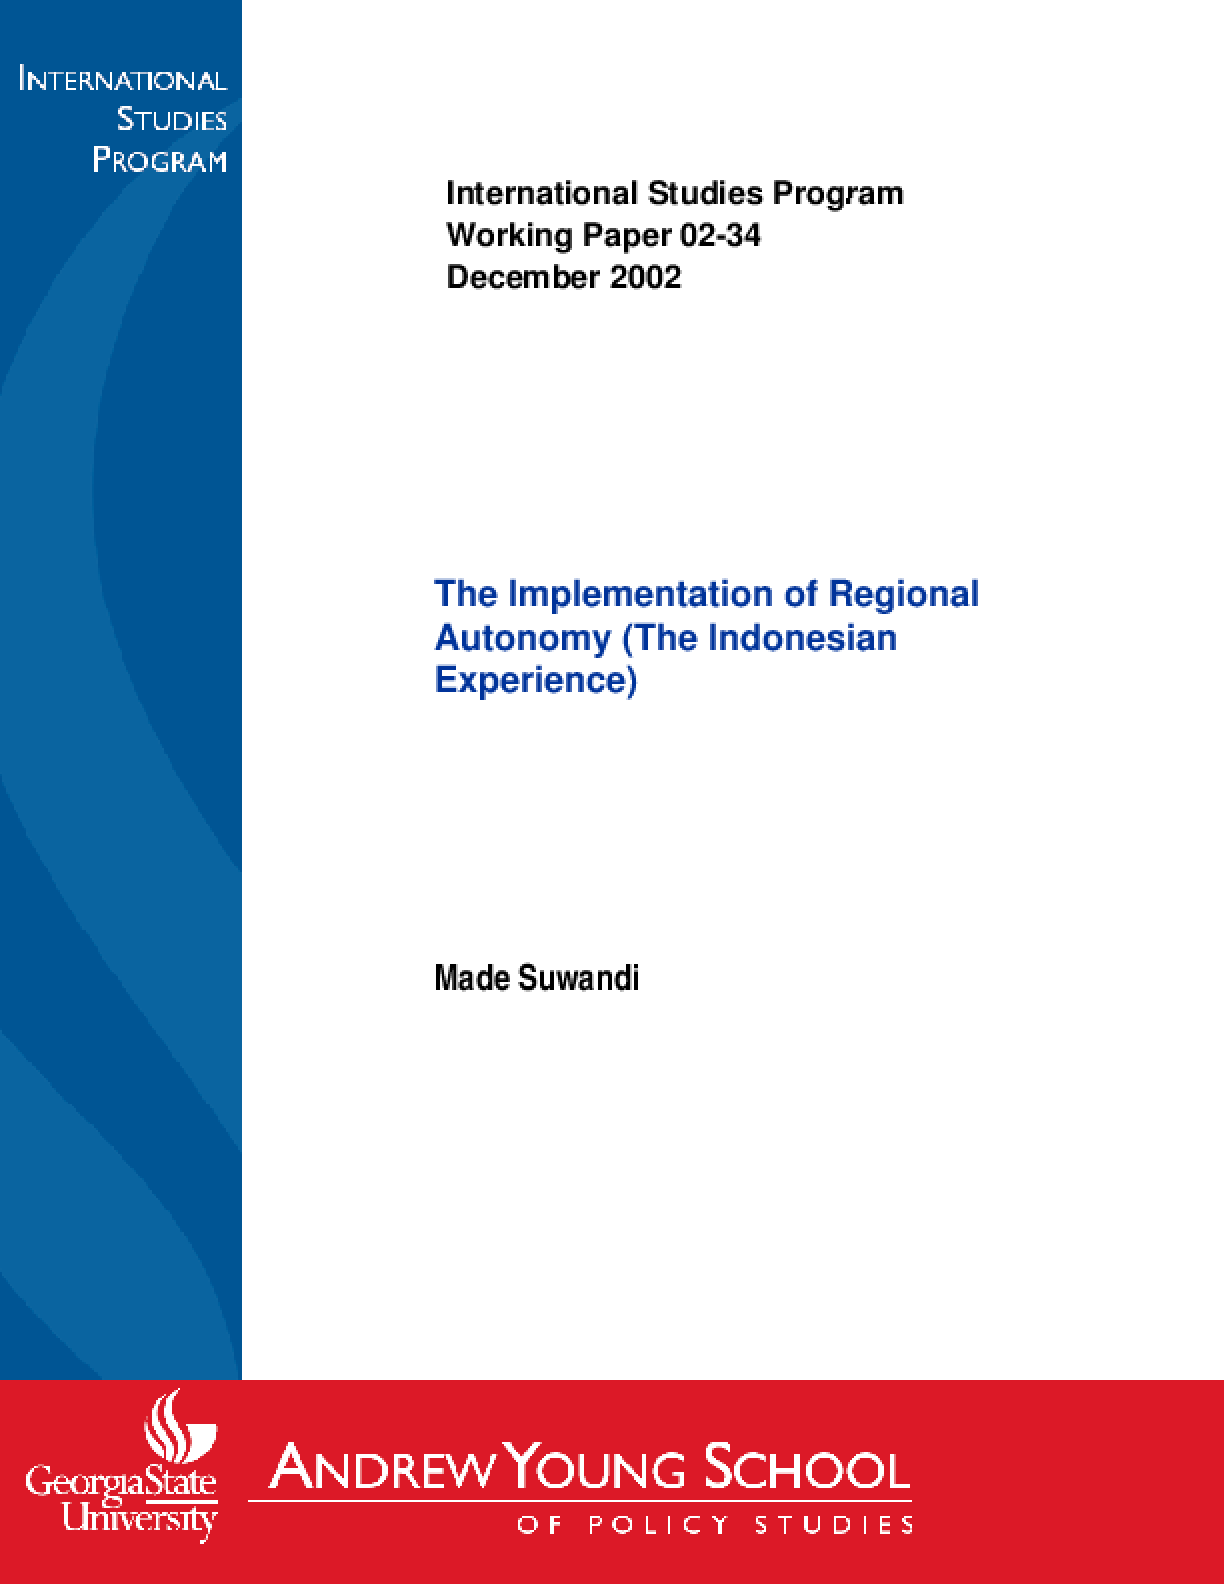 Implementation of Regional Autonomy (the Indonesian Experience)